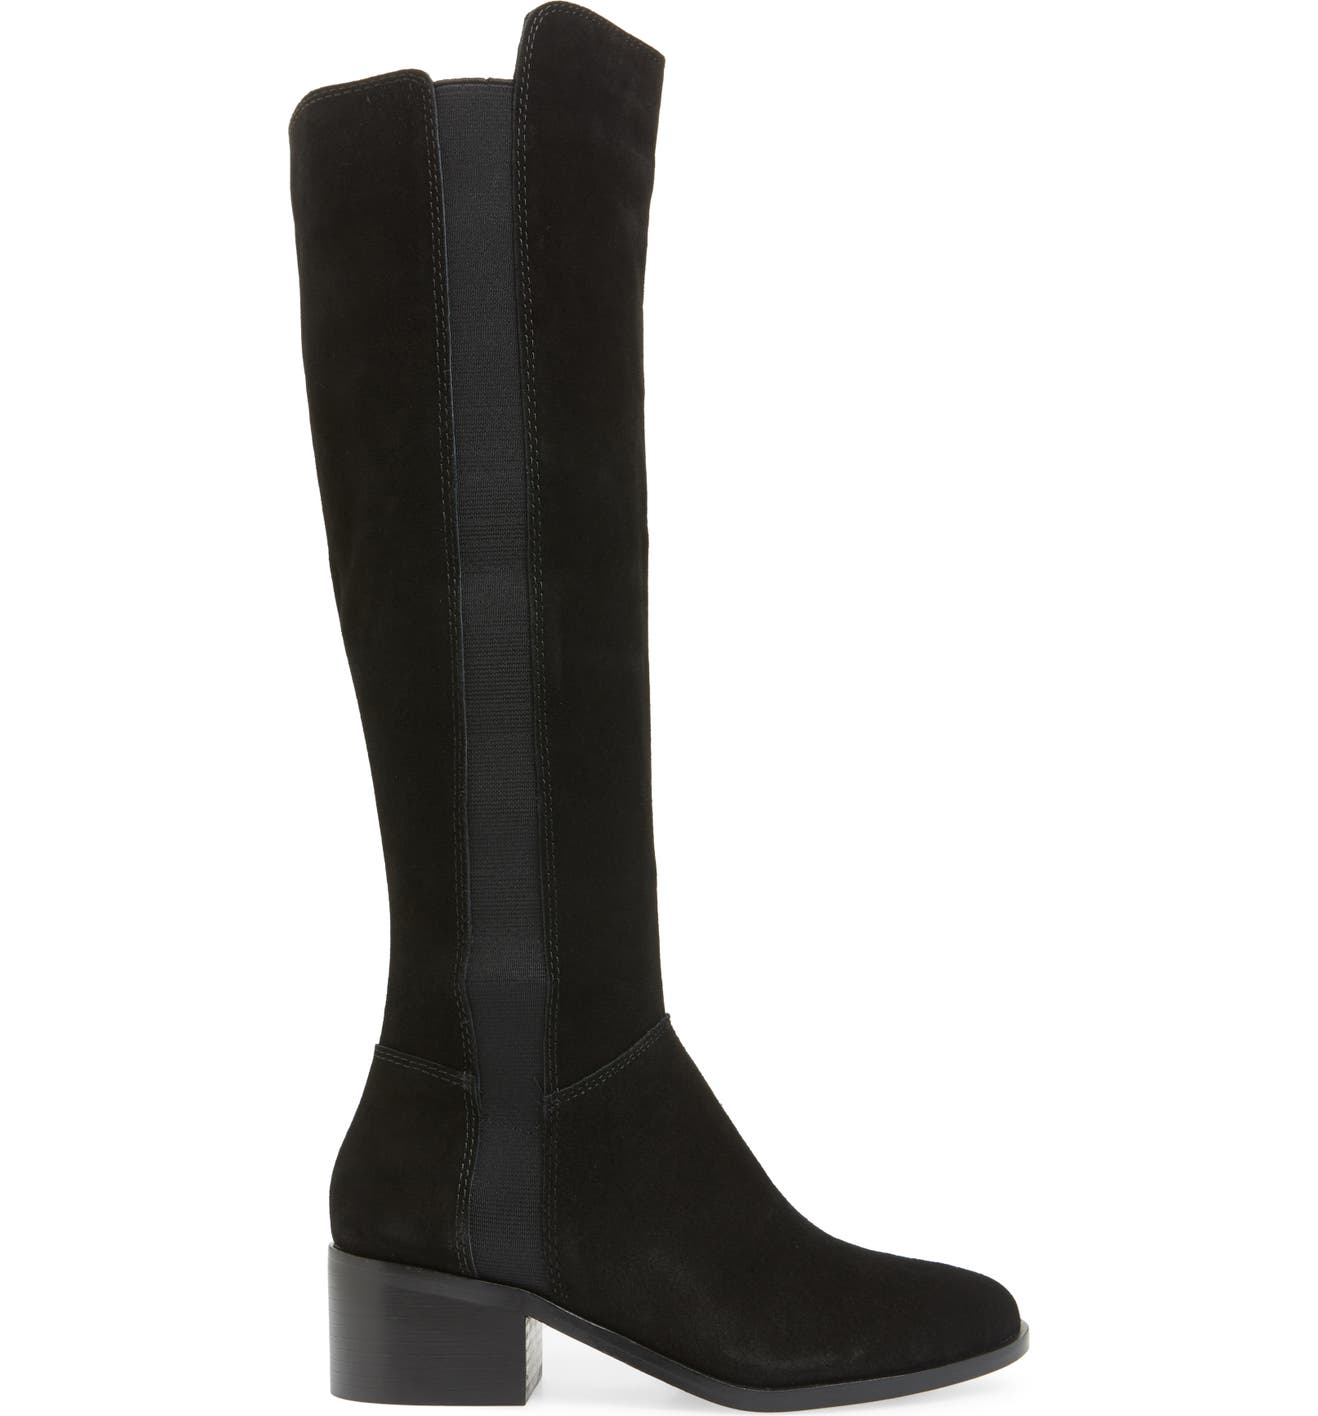 bfbe49bc2cb Giselle Over the Knee Boot